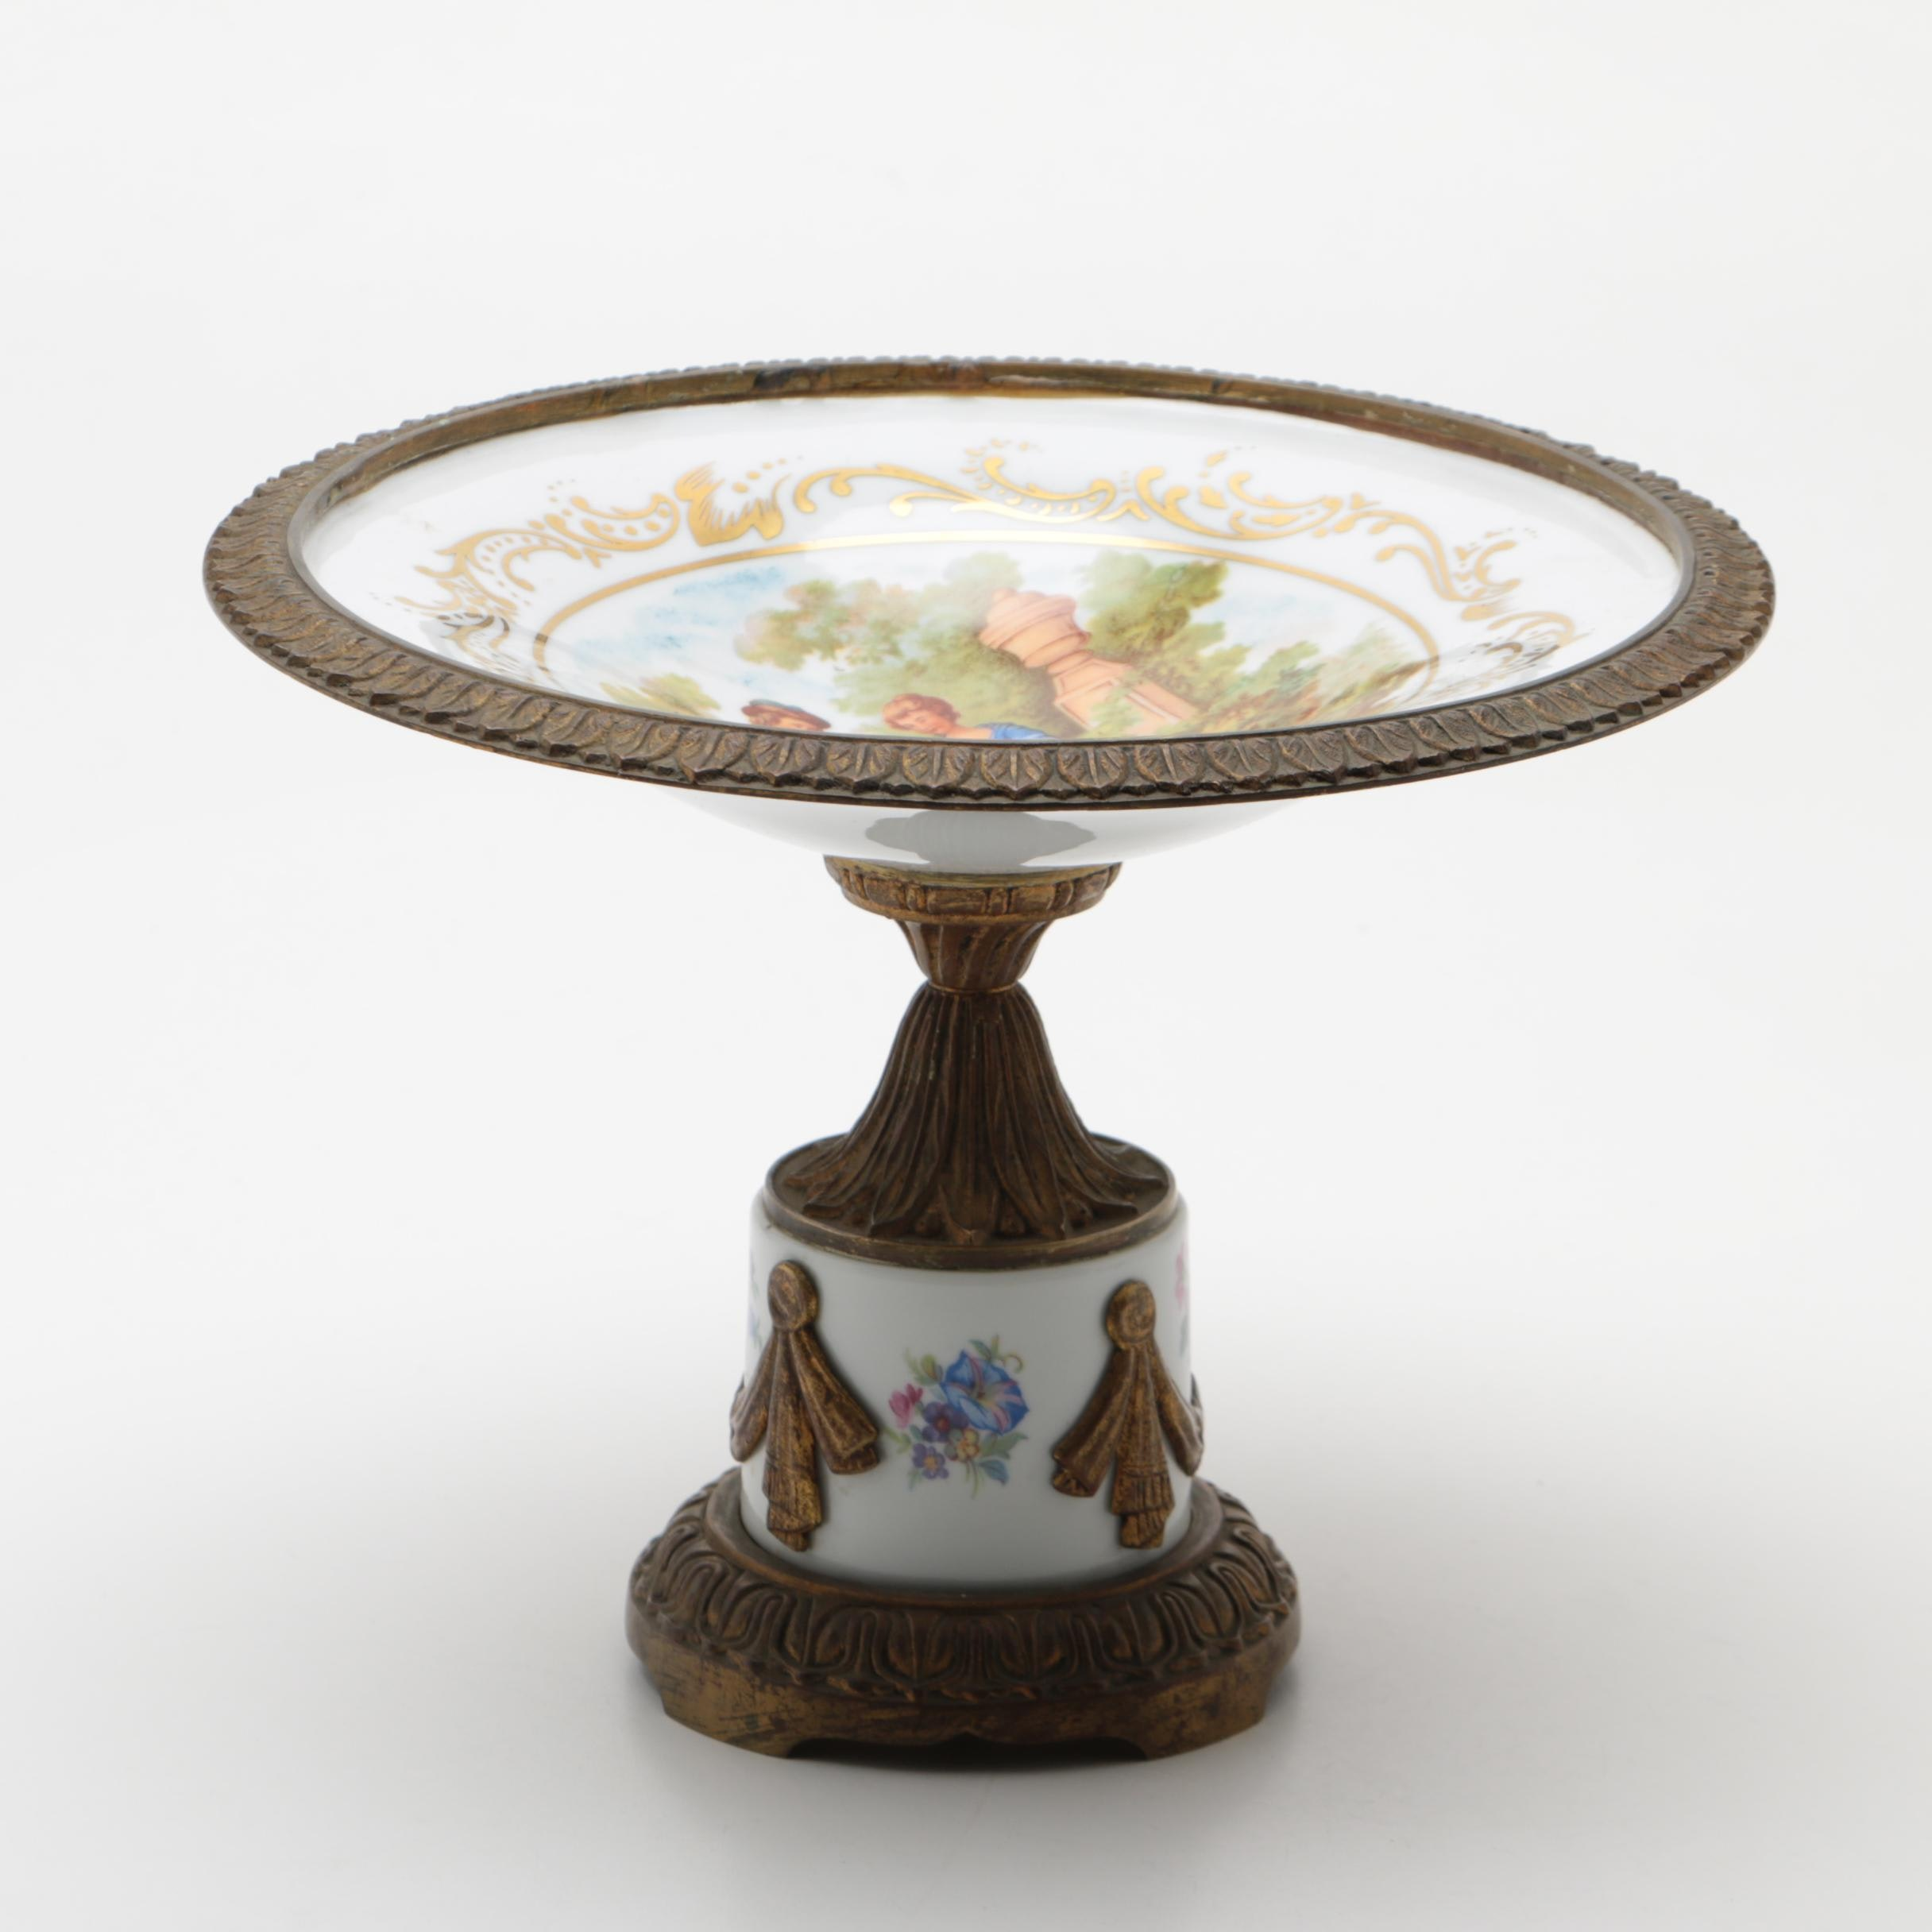 Sevres Style Hand-Painted Gilt Metal Mounted Porcelain Centerpiece